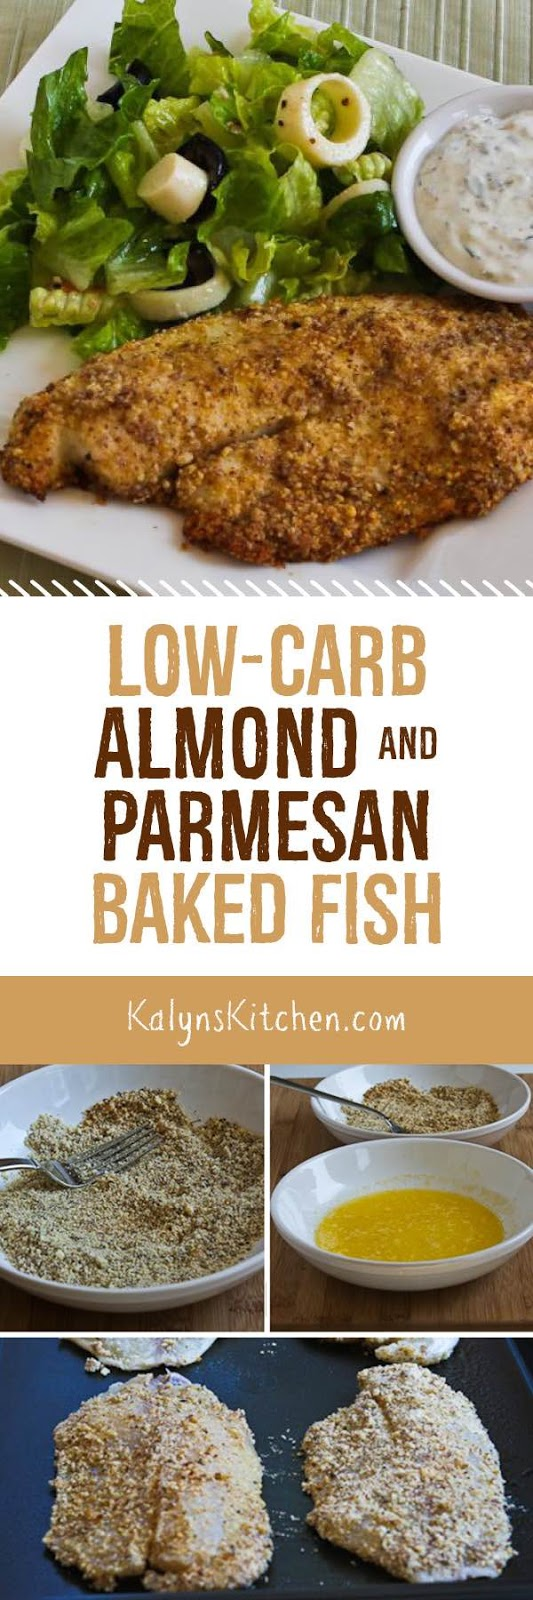 Low carb almond and parmesan baked fish kalyn 39 s kitchen for Keto fish recipes